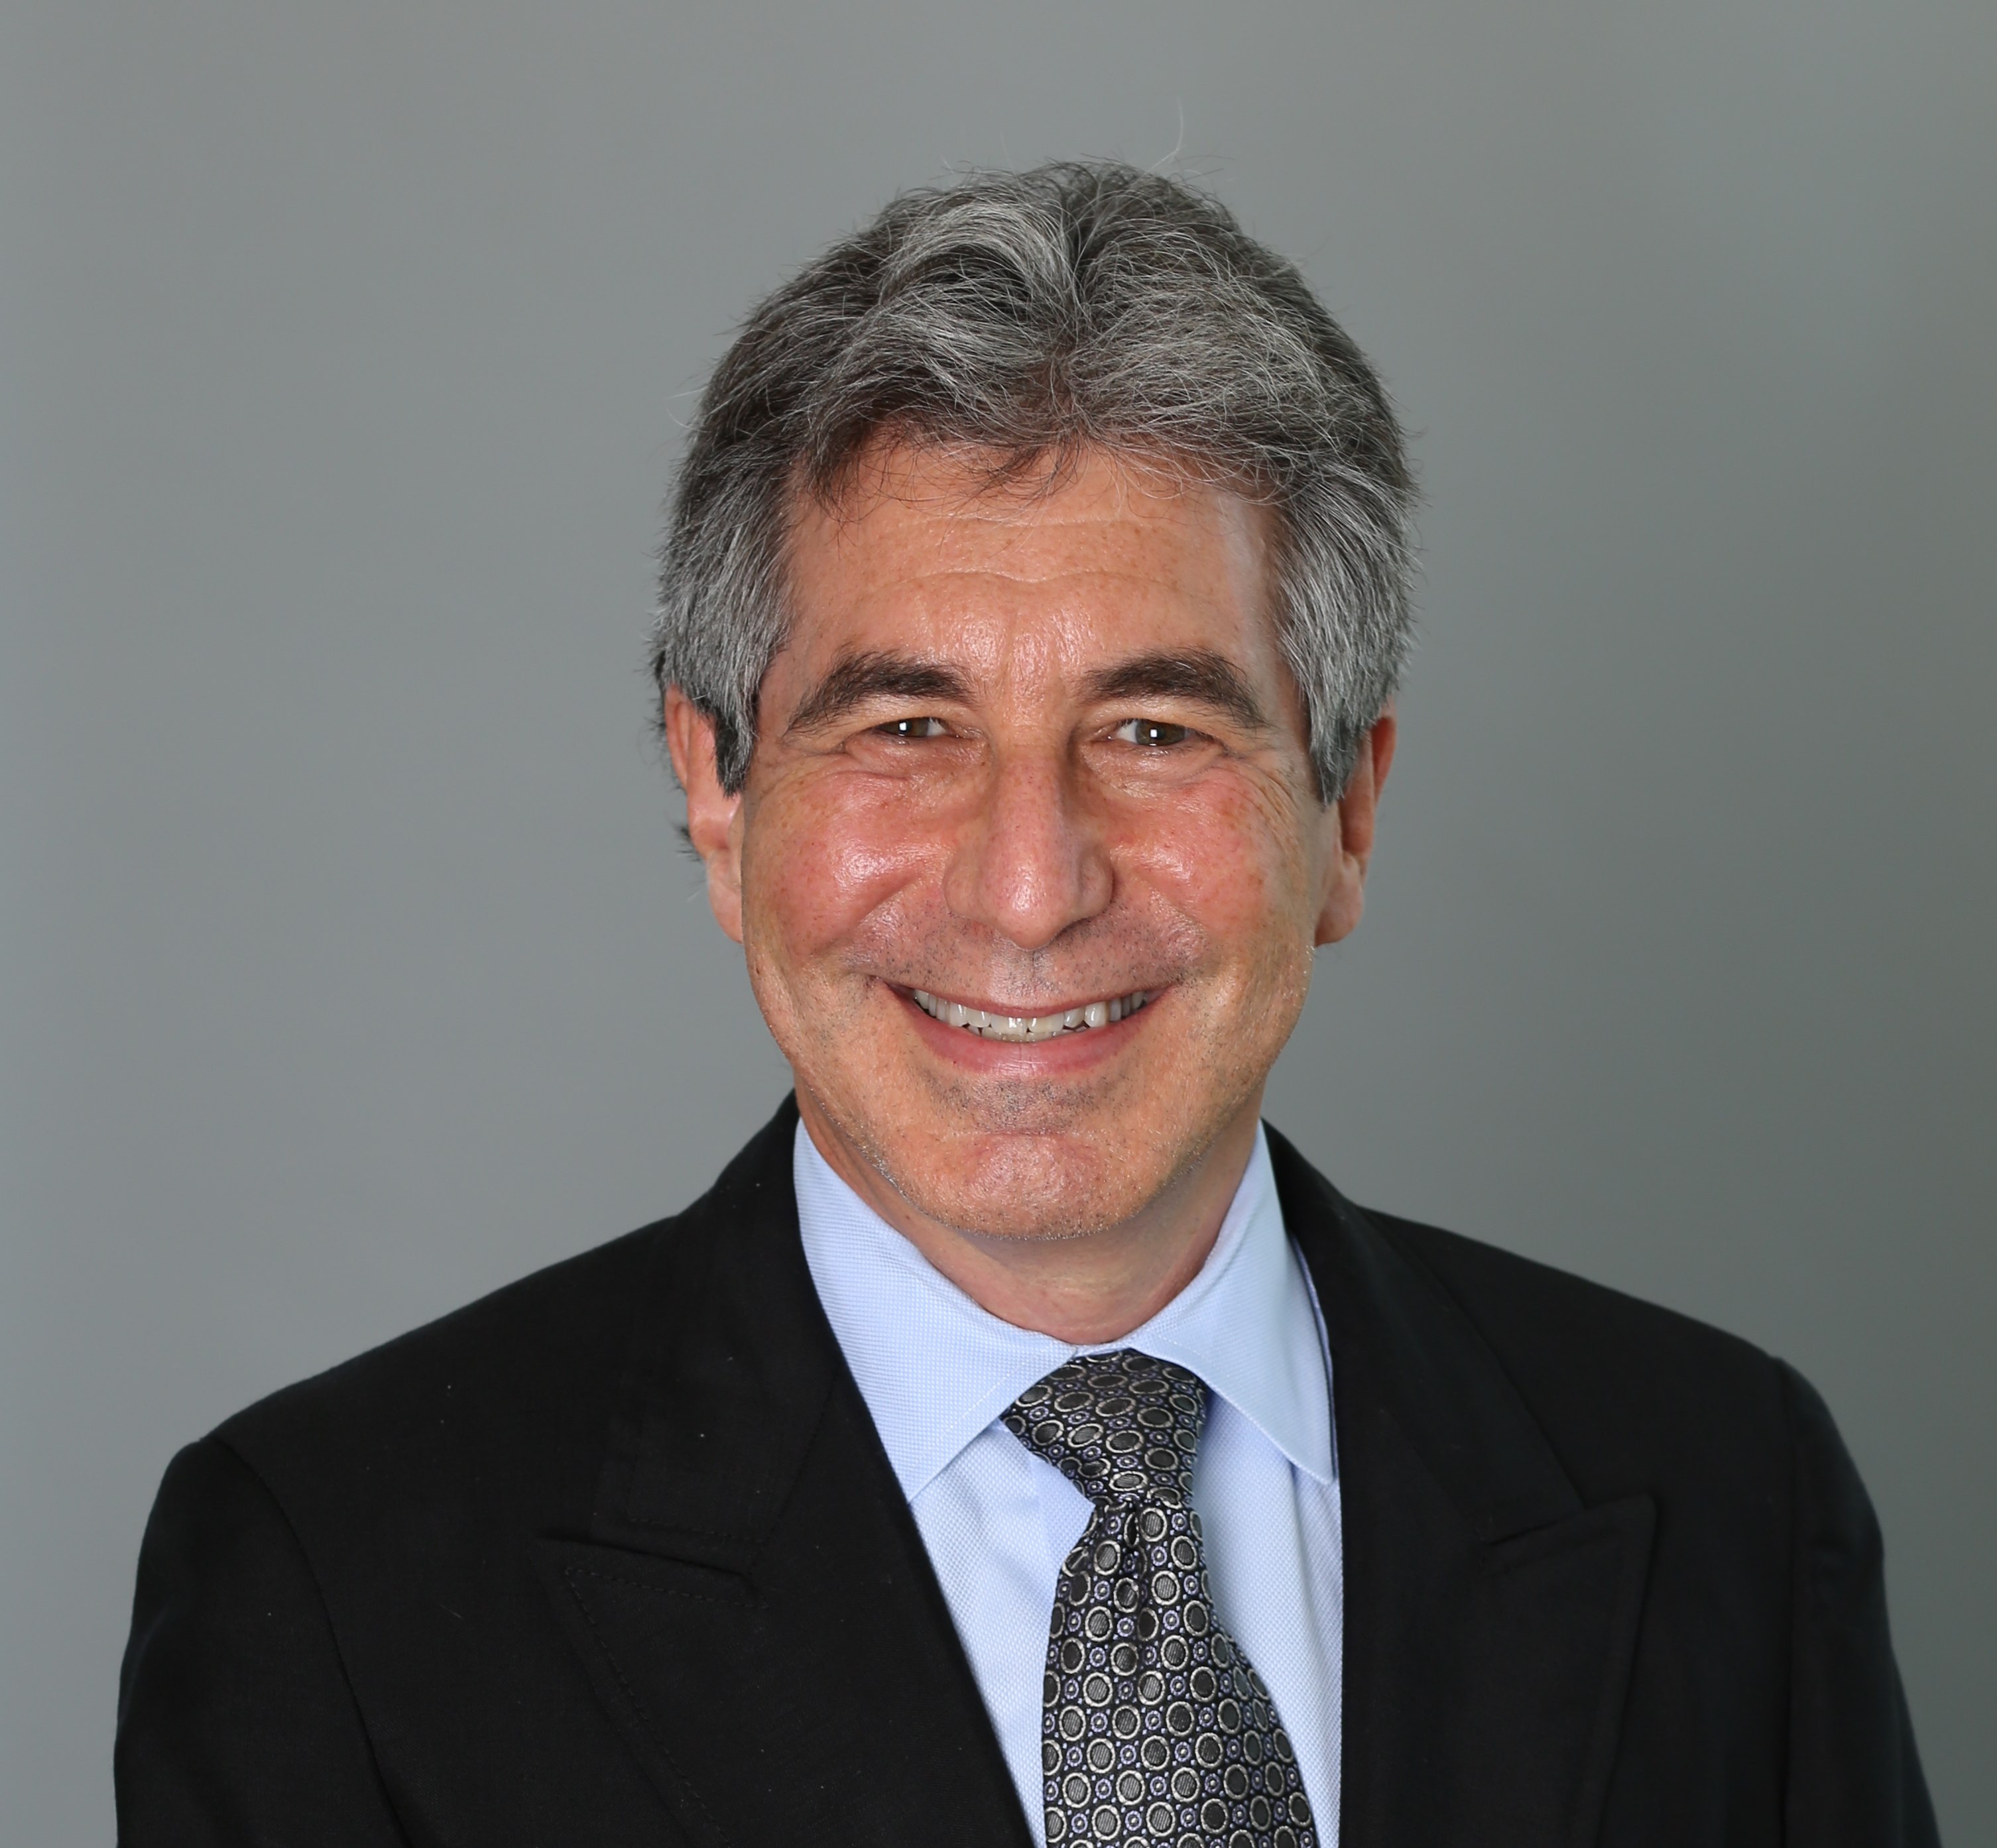 Geoffrey Ginsburg, new director of MEDx (Medicine and Engineering at Duke)